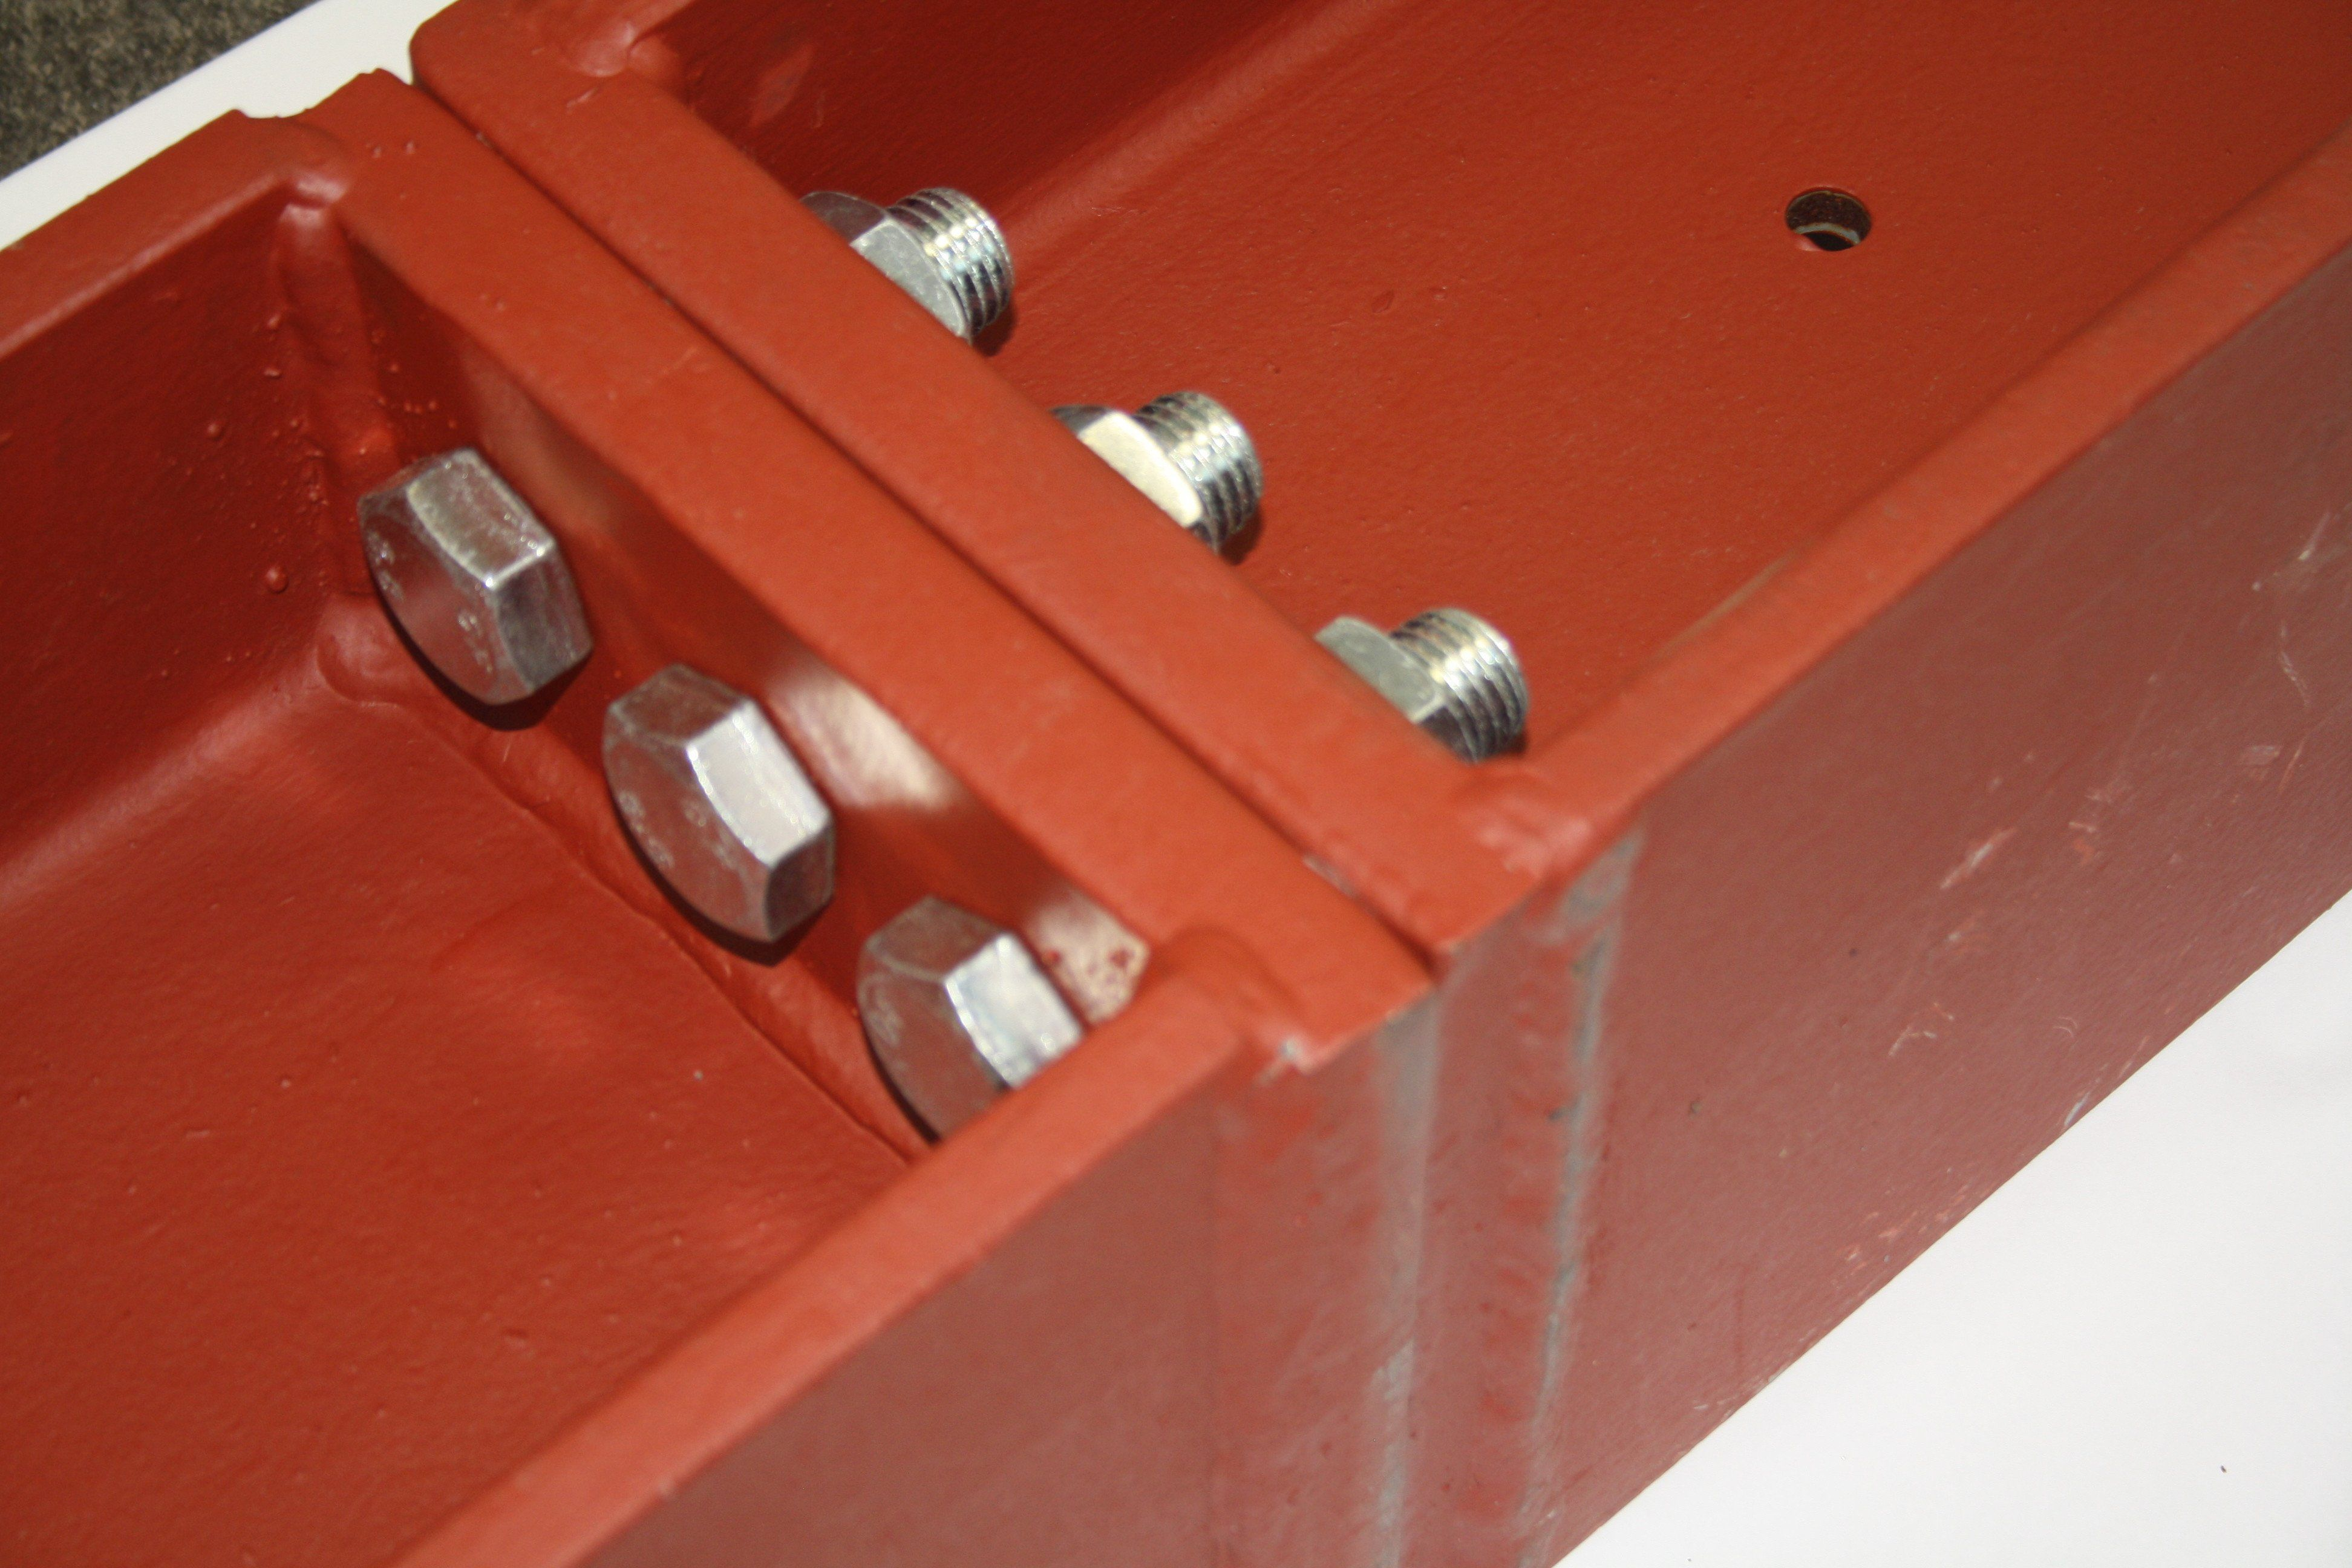 203 X 46 Uc End Plate Spliced Third Points 2 No Splices How To Change A Shower Pull Cord Switch Diynotcom Diy And Home